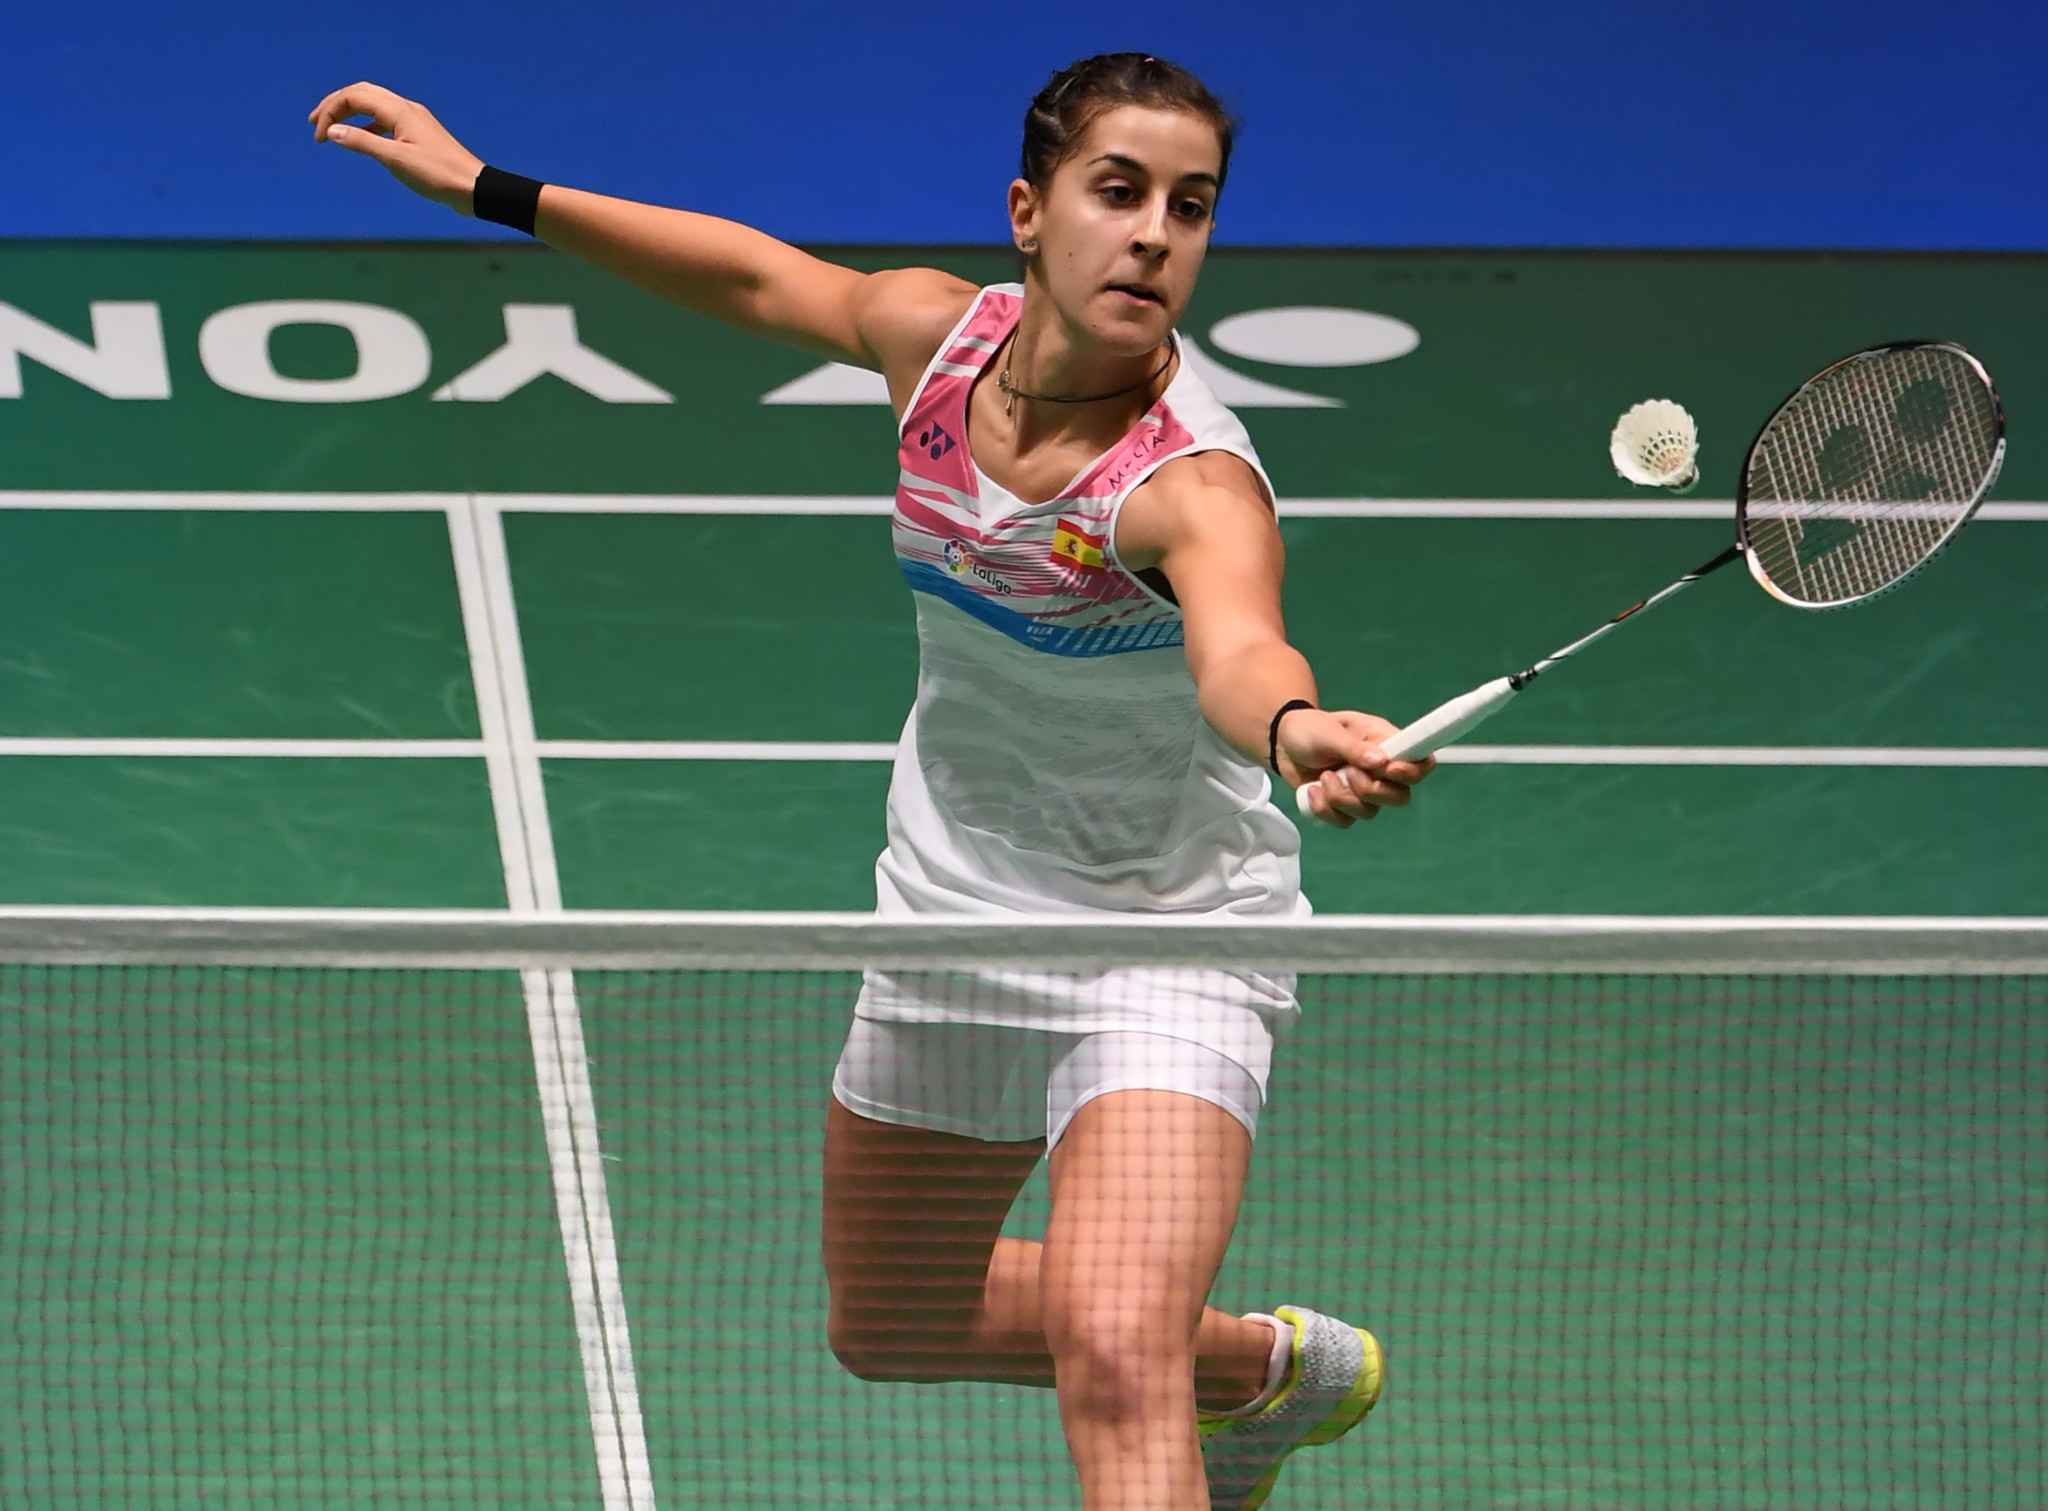 Spain's Carolina Marin advanced to the women's singles final with a walkover win against Japan's Nozomi Okuhara ©Getty Images